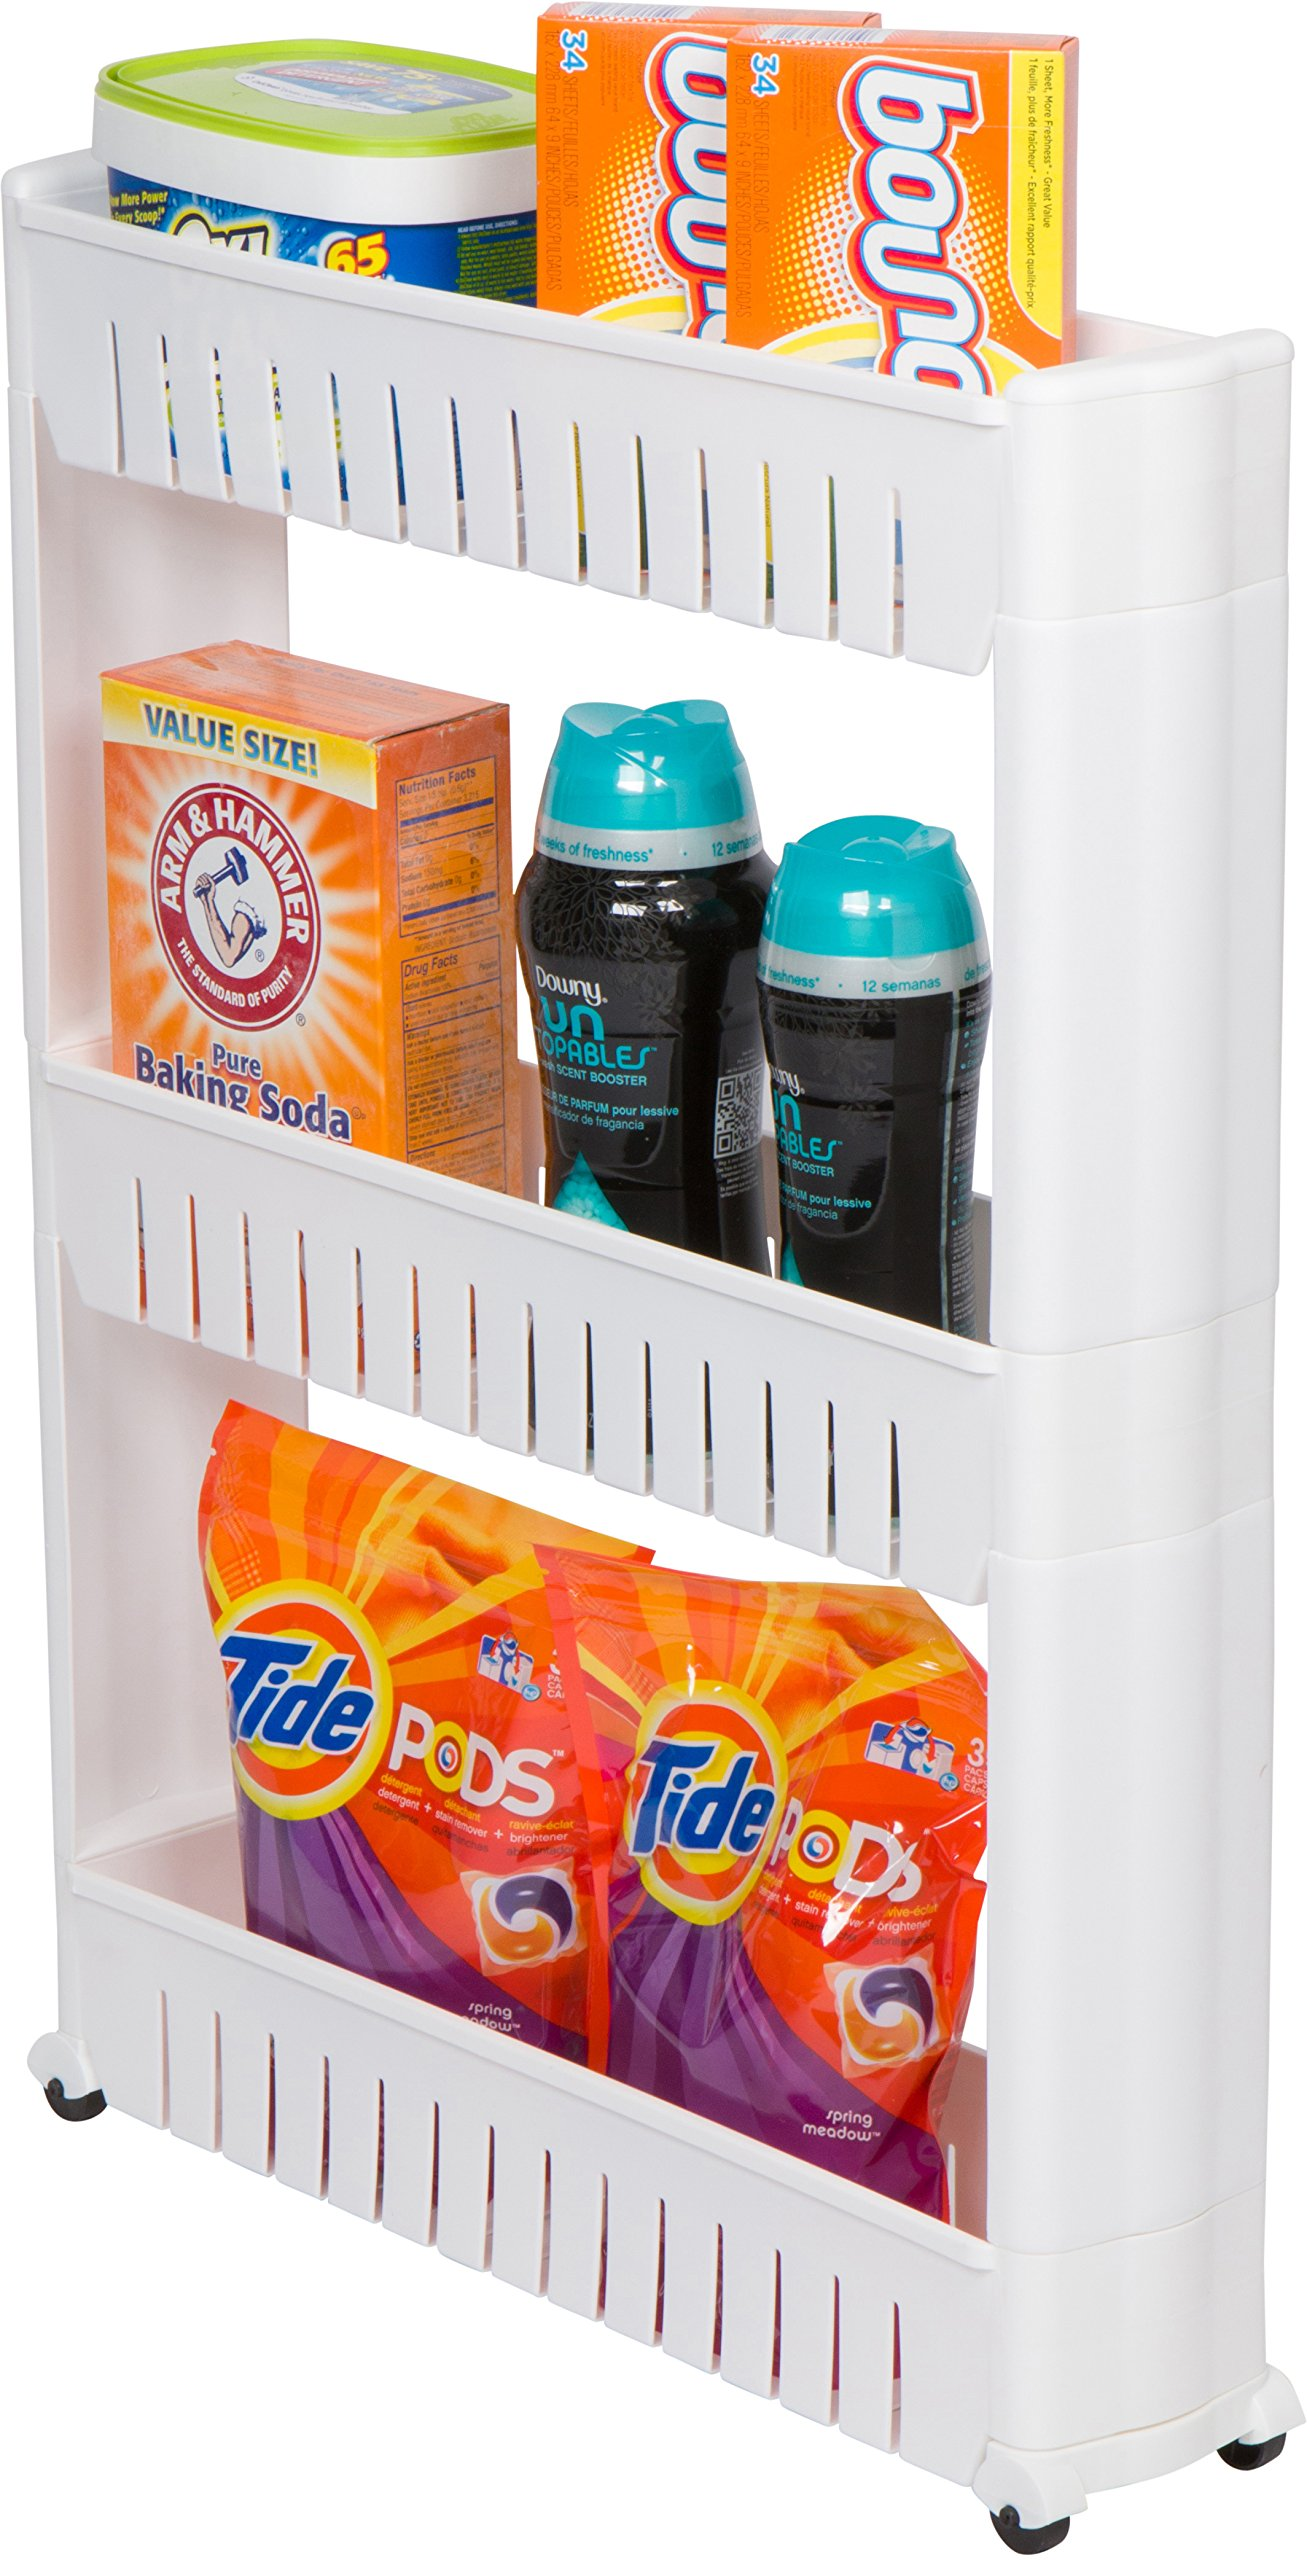 Trademark Innovations STORAGE-TWR 28'' Slim Slide Out Storage Tower for Laundry, Bathroom, or Kitchen